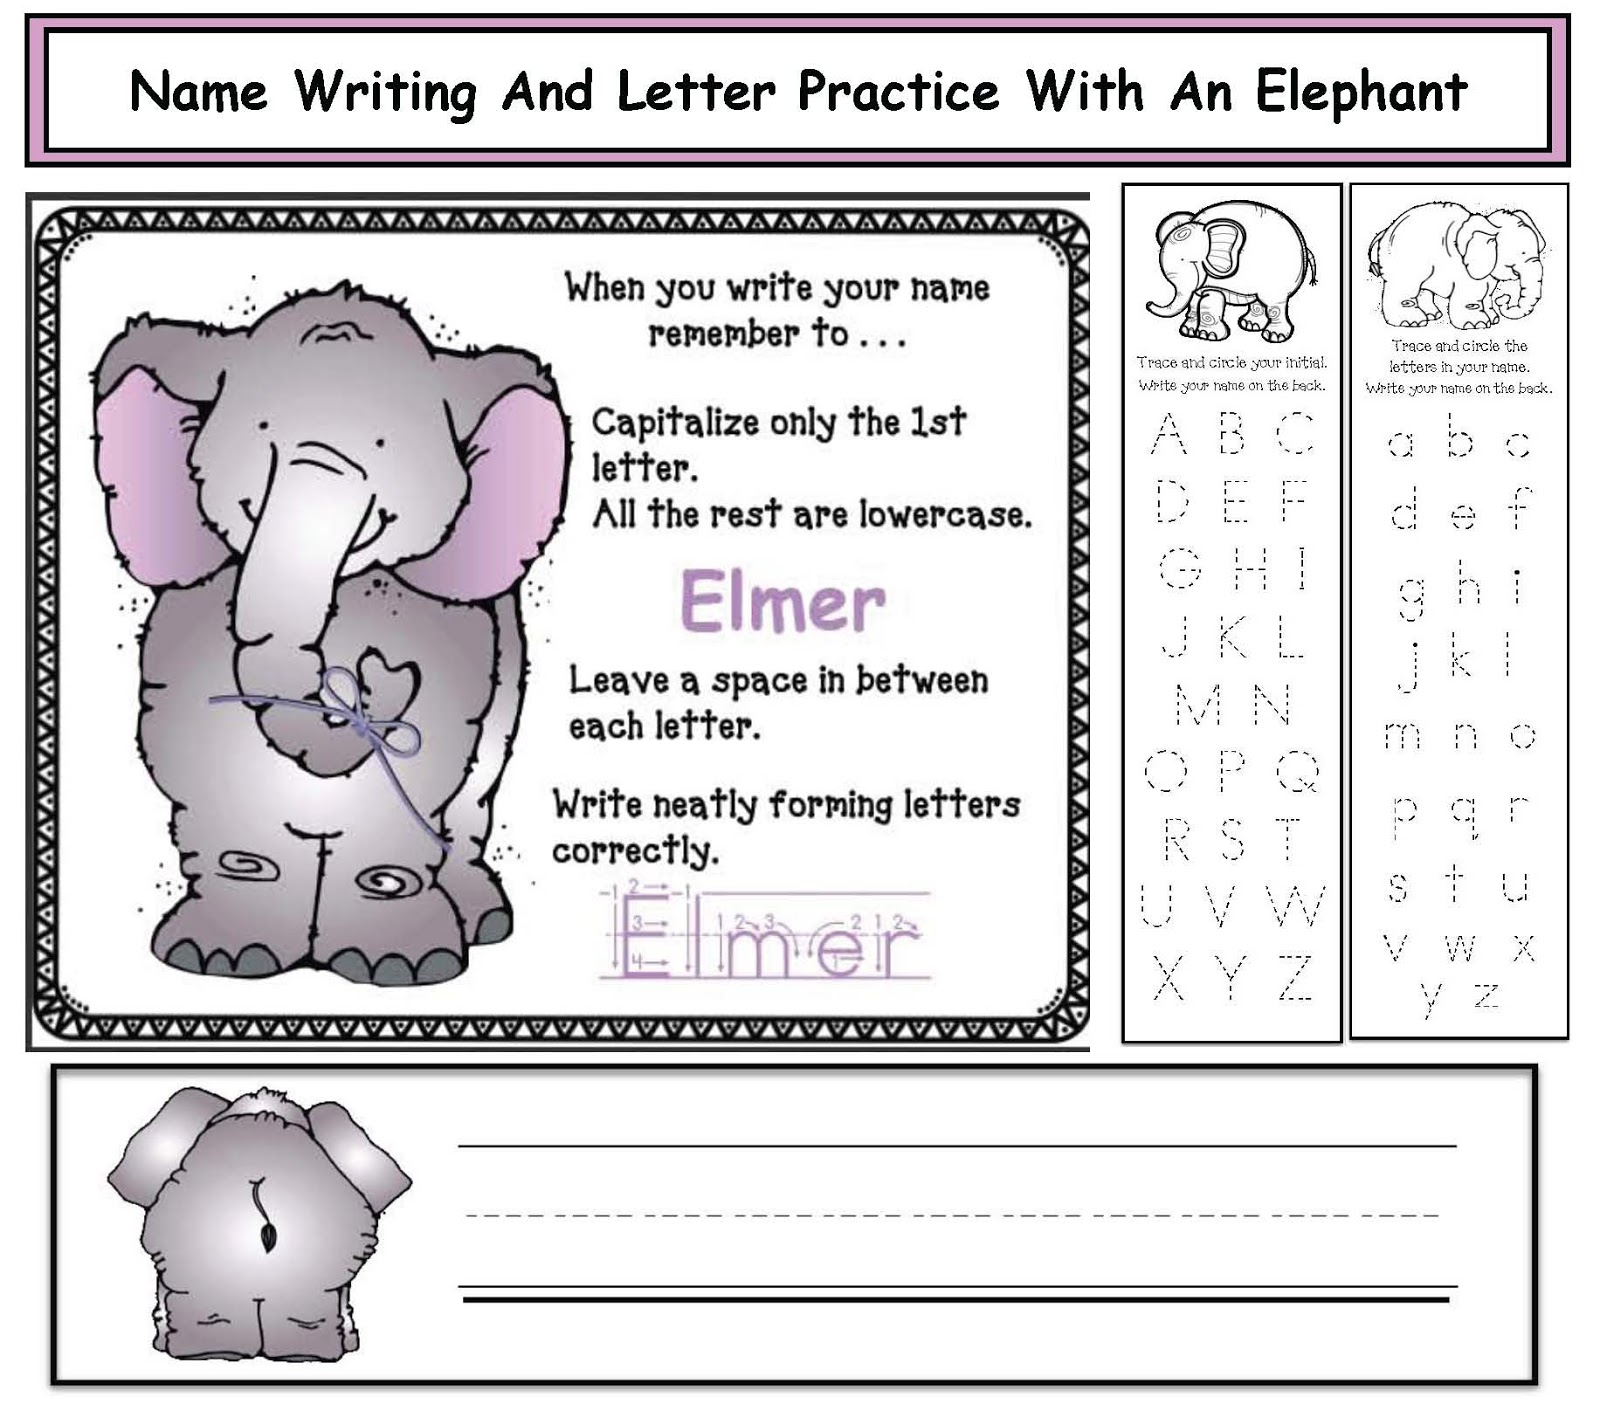 Name Writing & Letter Practice